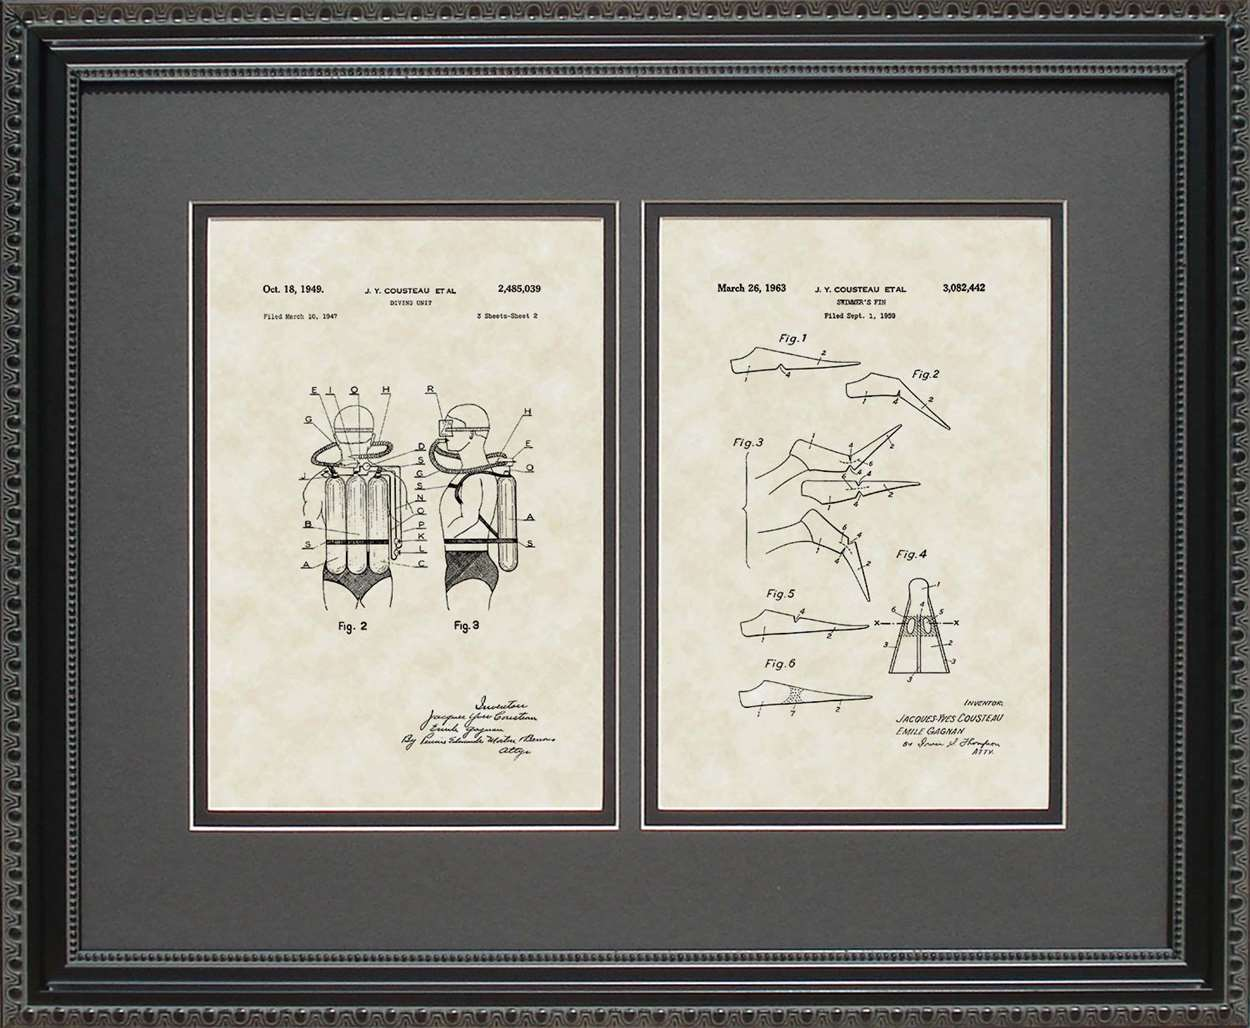 Scuba Equipment & Scuba Fins Patents, 16x20